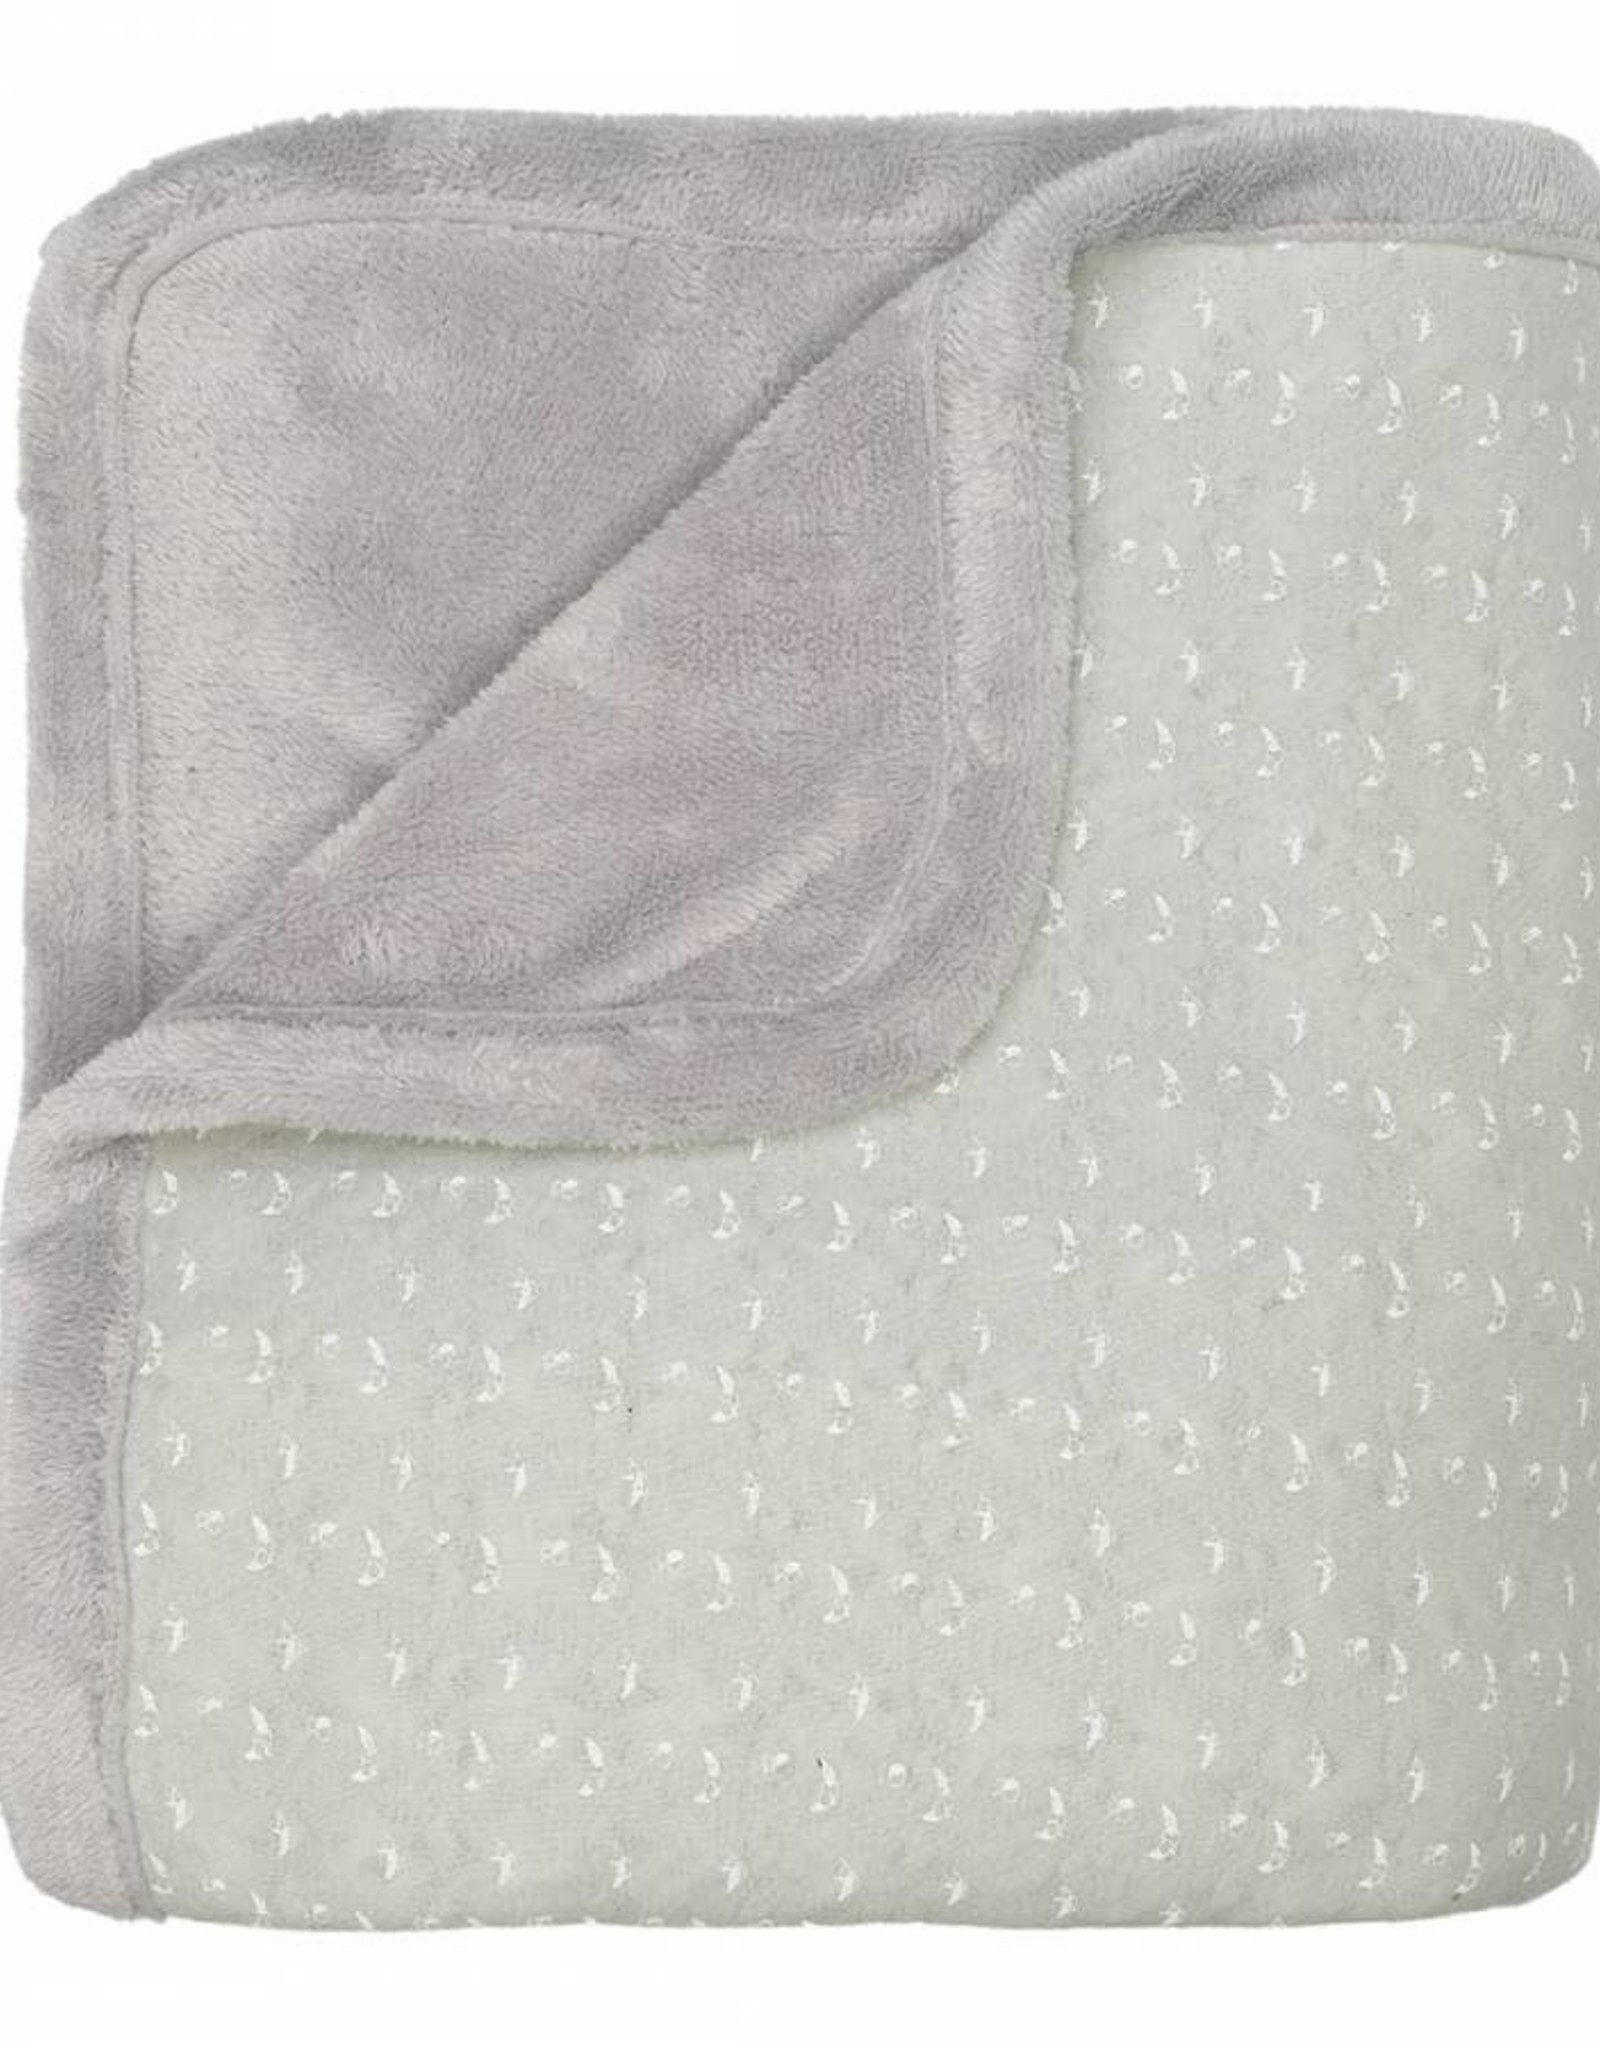 Snoozebaby Crib Blanket Stylish Cocooning